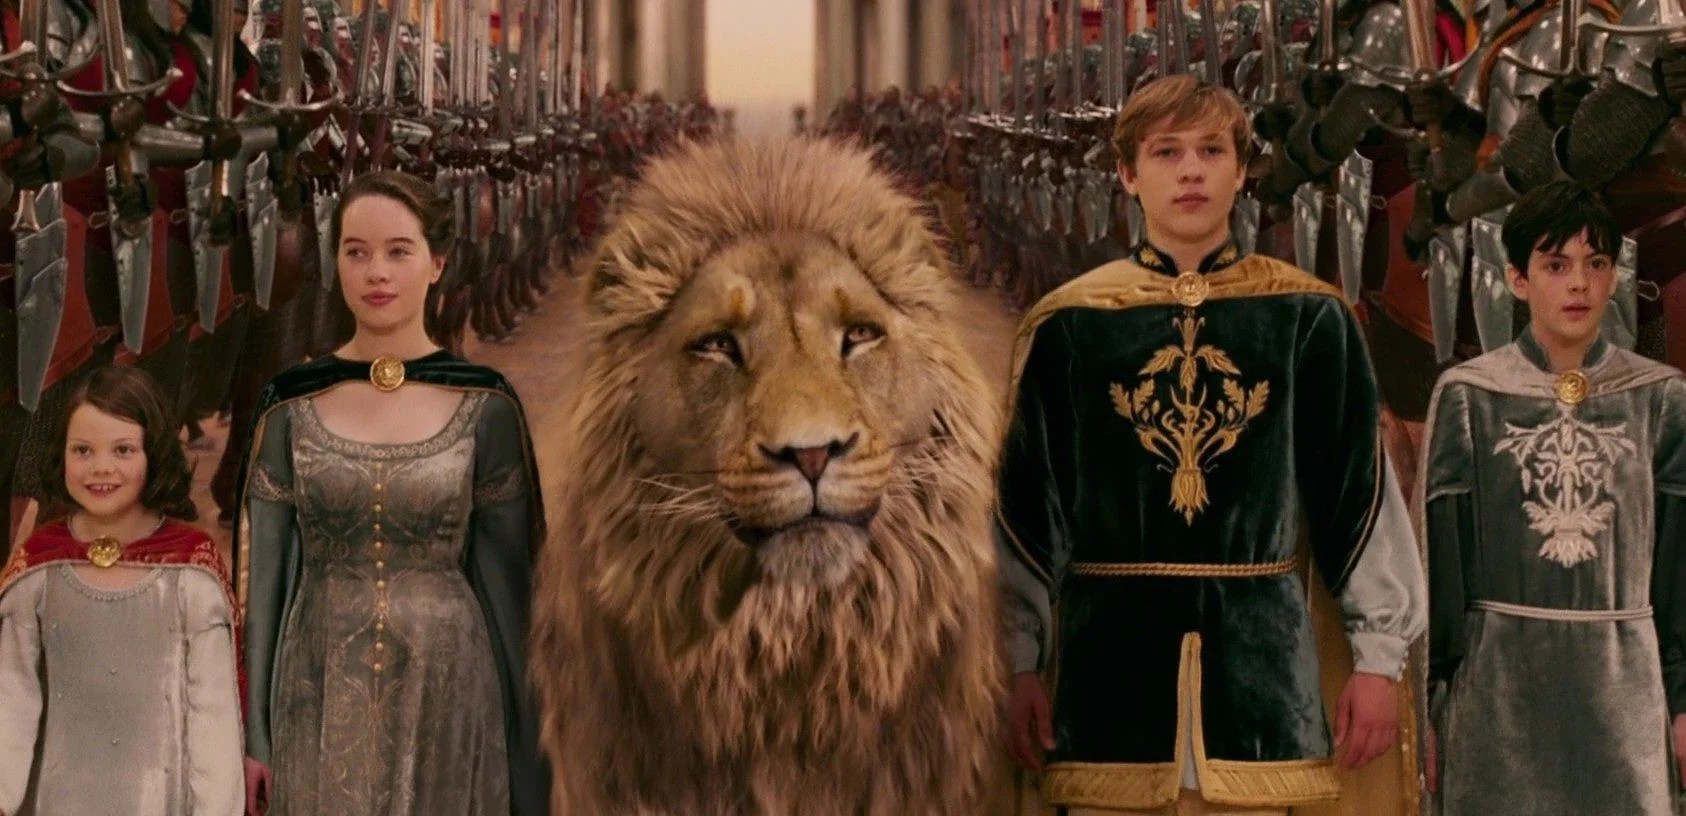 Narnia The Silver Chair Narnia Franchise To Be Rebooted With Fourth Movie The